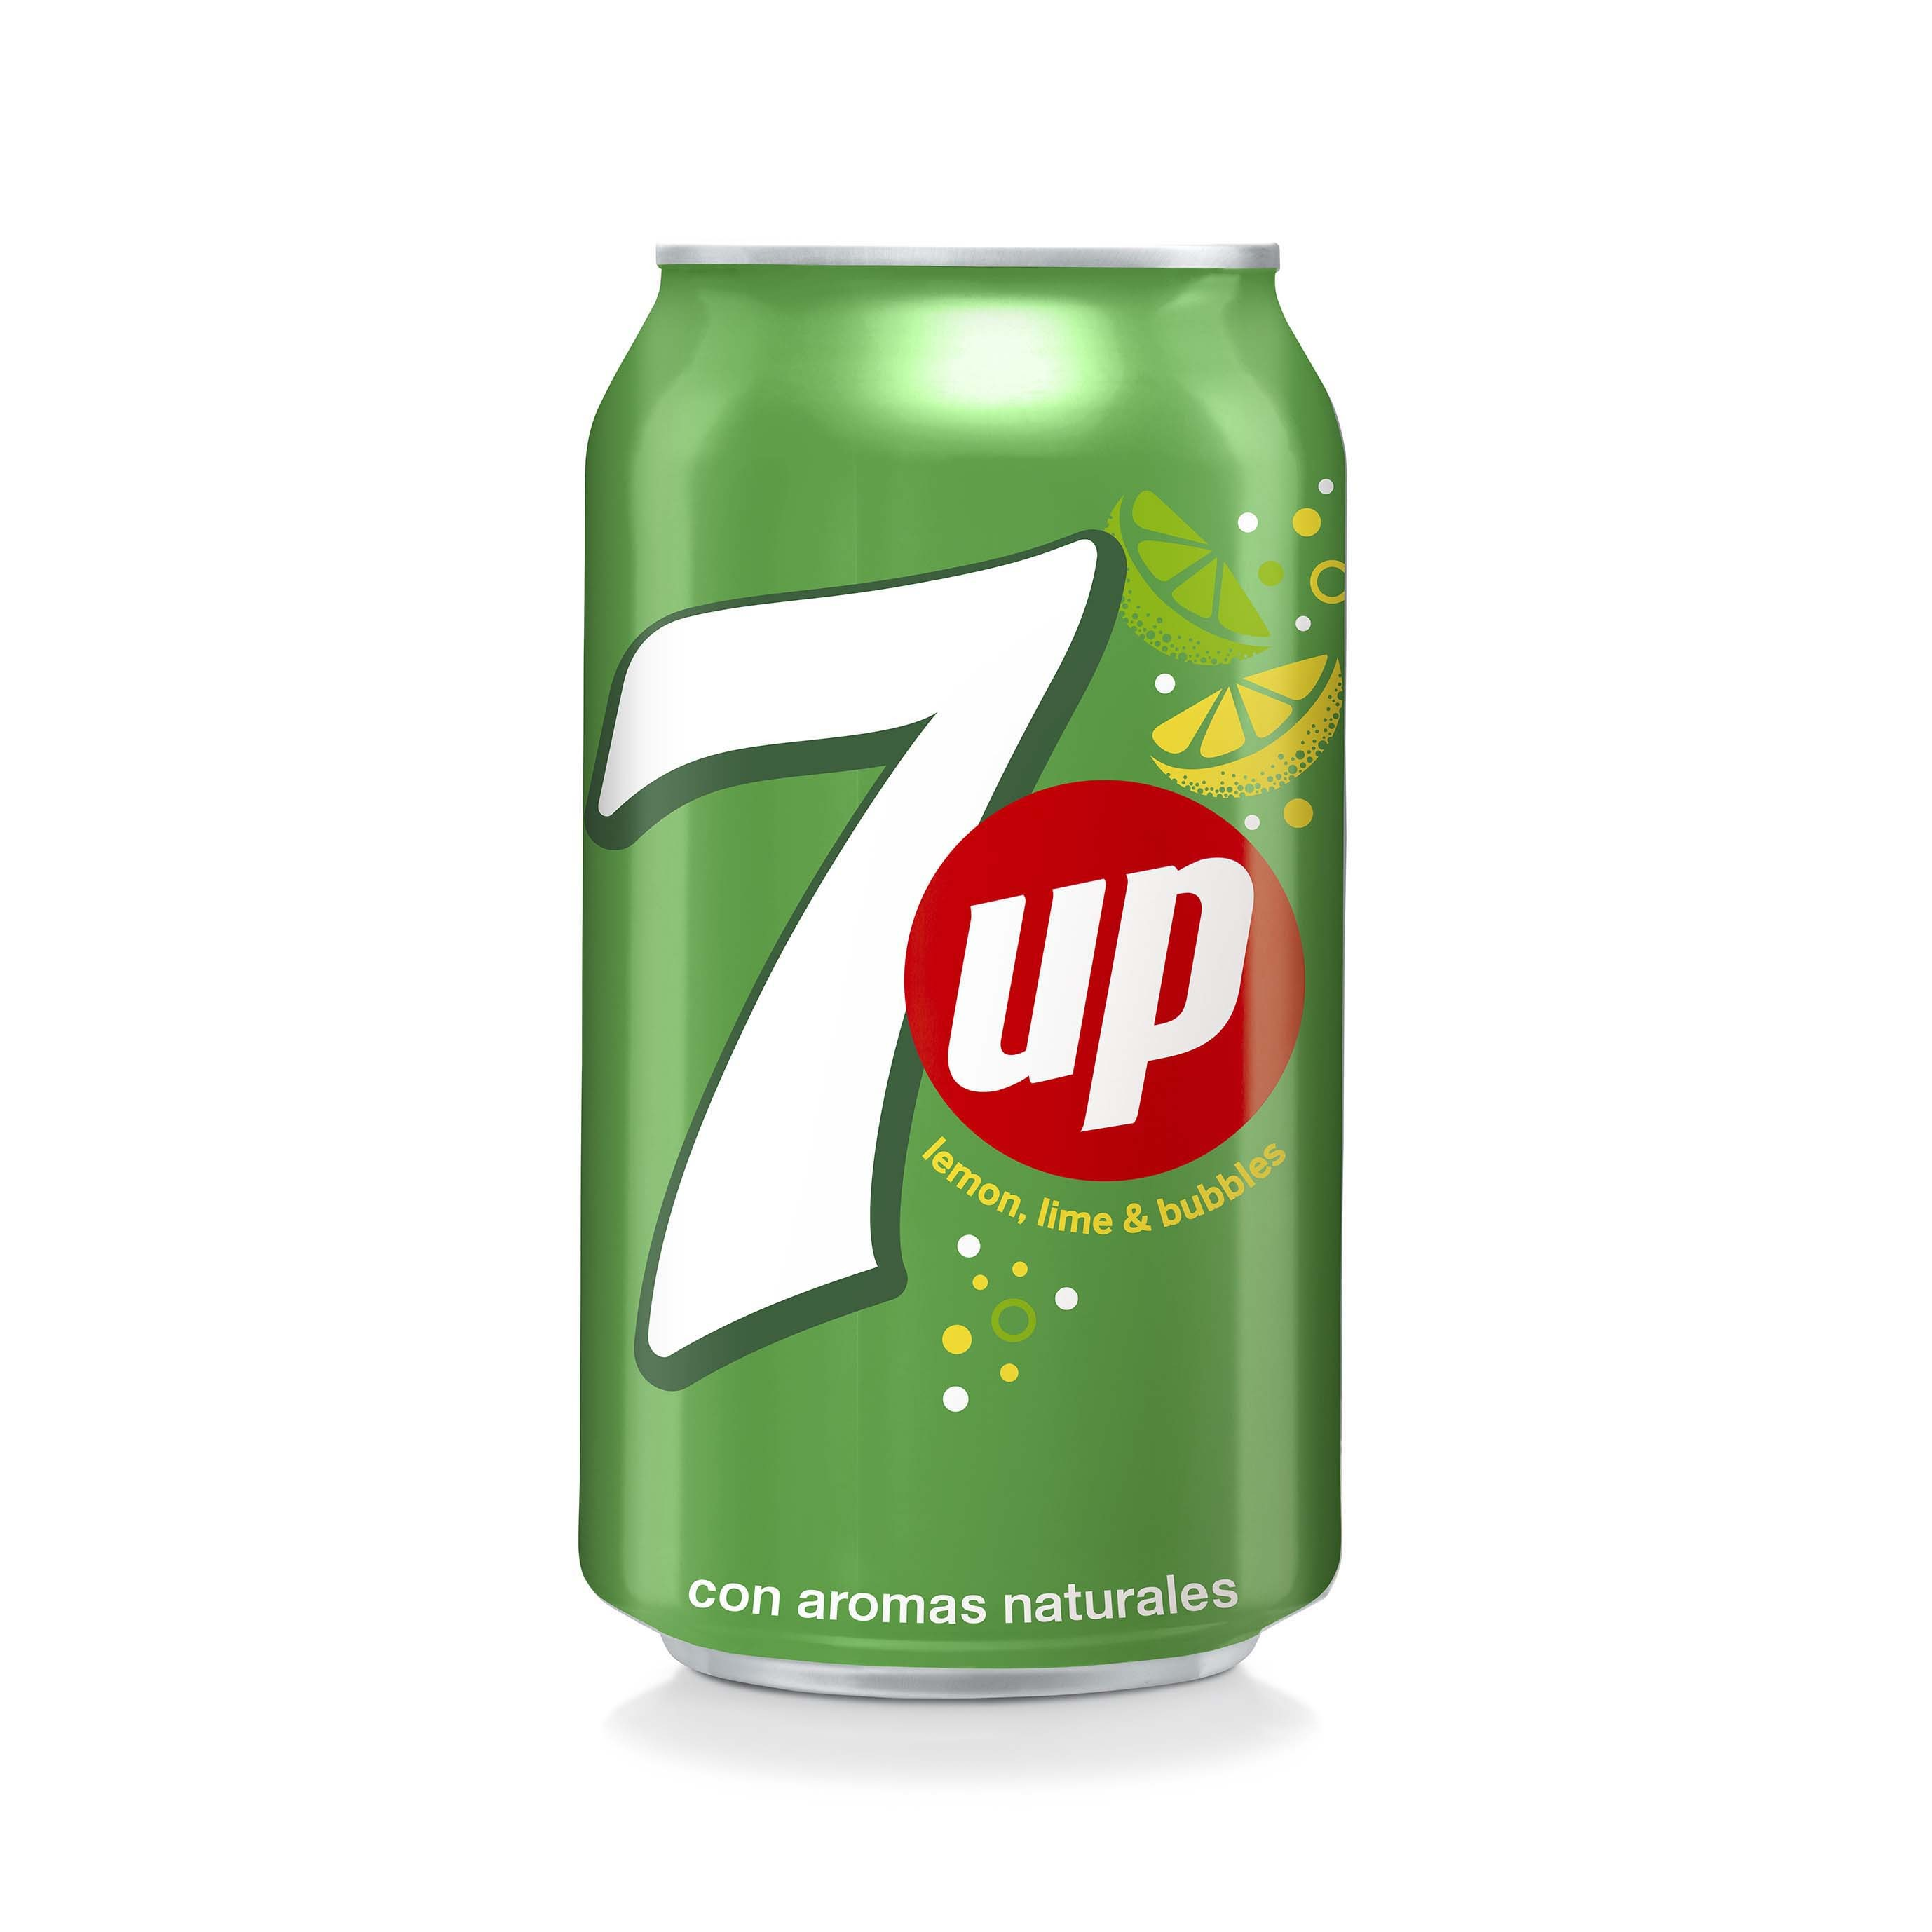 7up lima lima de 33cl. en lata